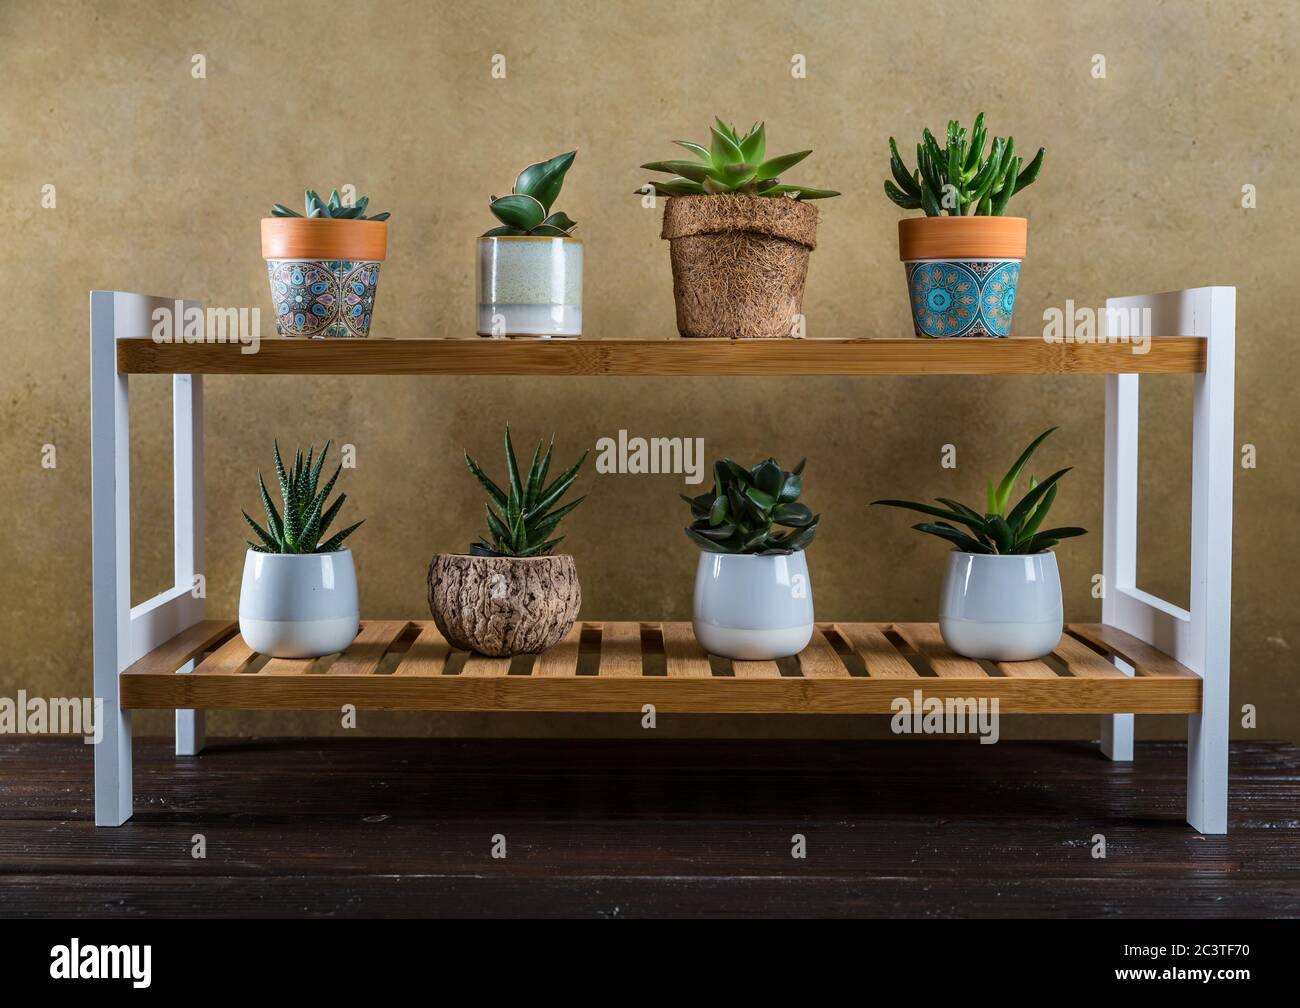 Succulent Shelf High Resolution Stock Photography And Images Alamy